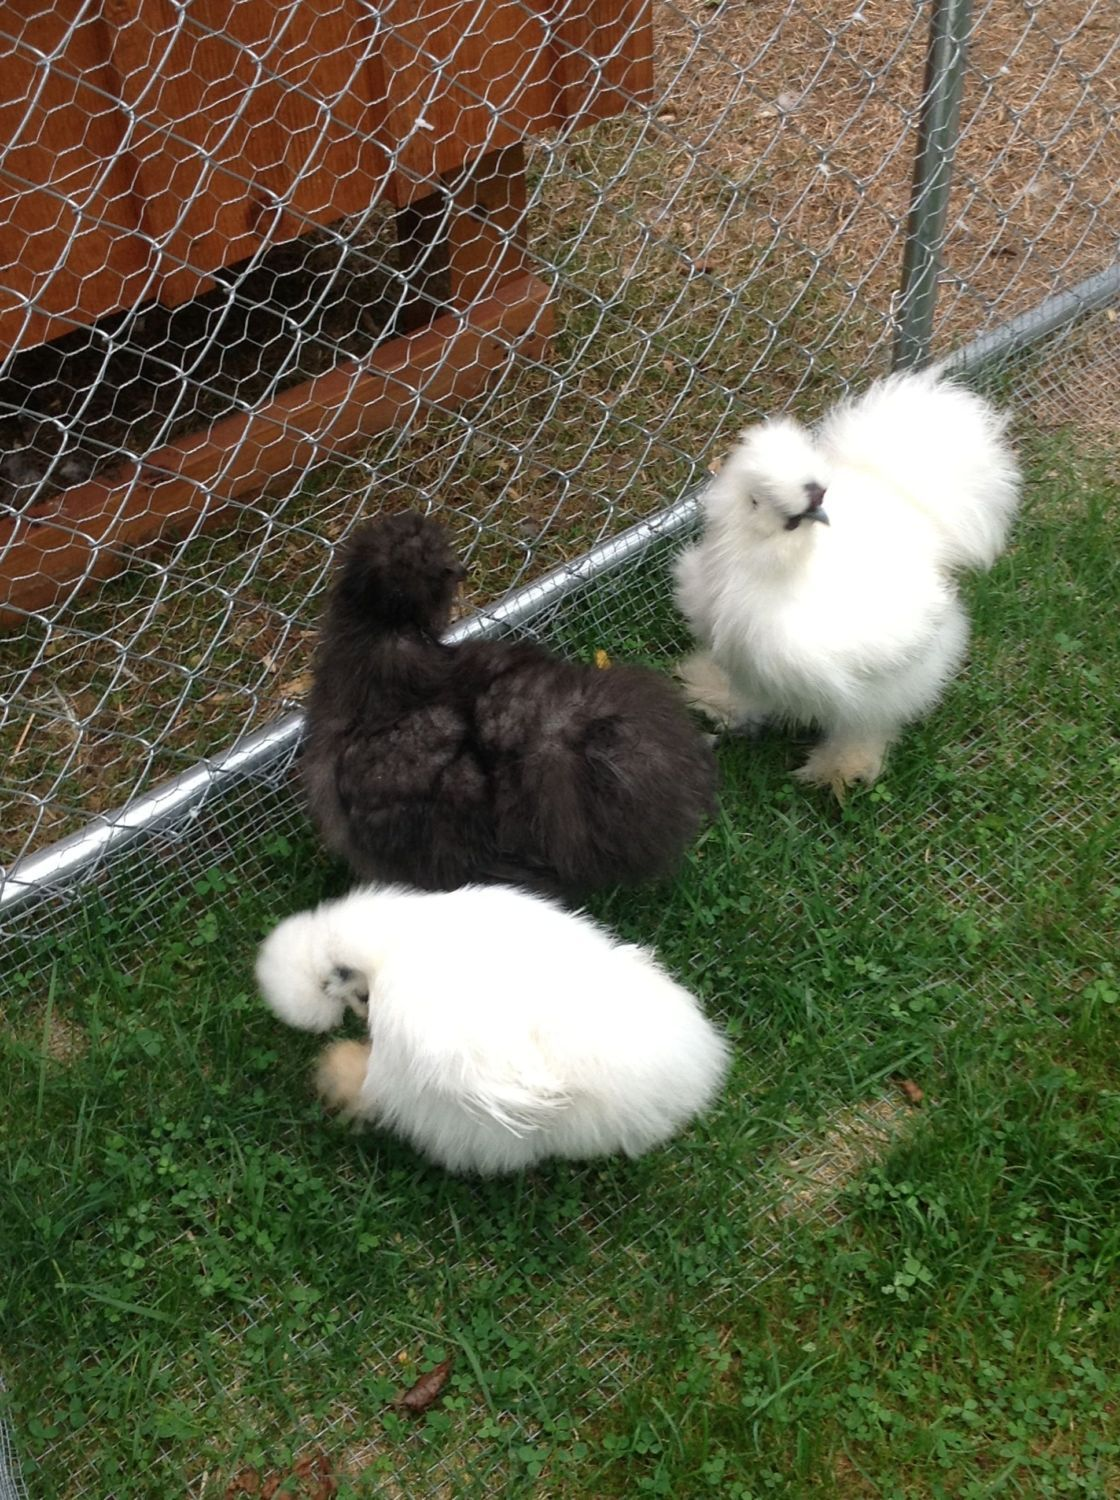 My Silkie's what are they?